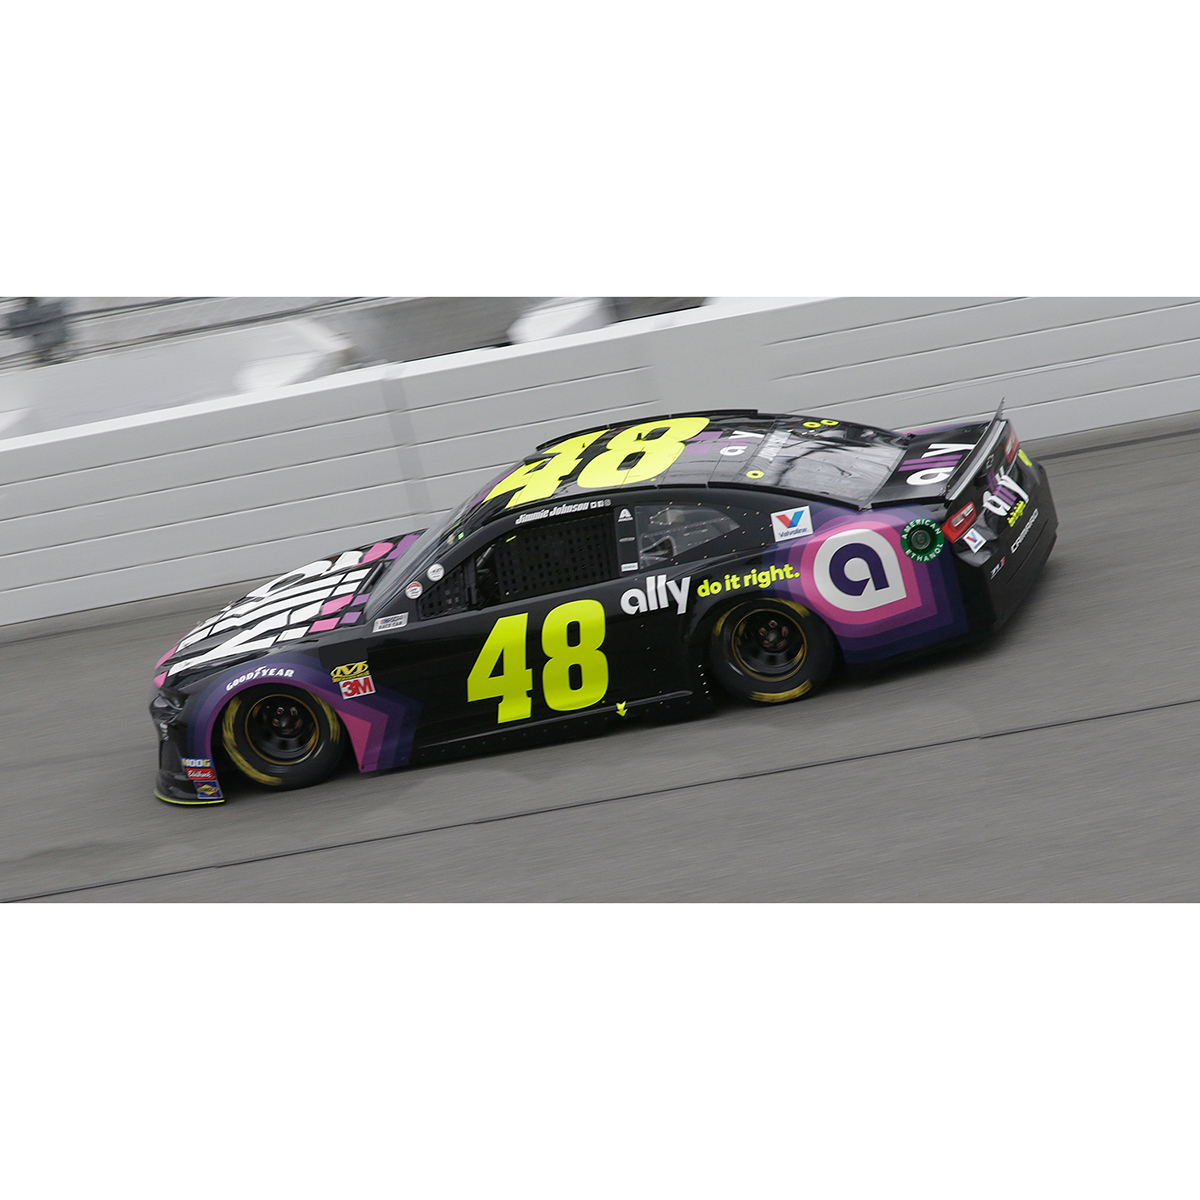 Jimmie Johnson 2019 NASCAR Clash at Daytona Winner 1:24 HO Die-Cast